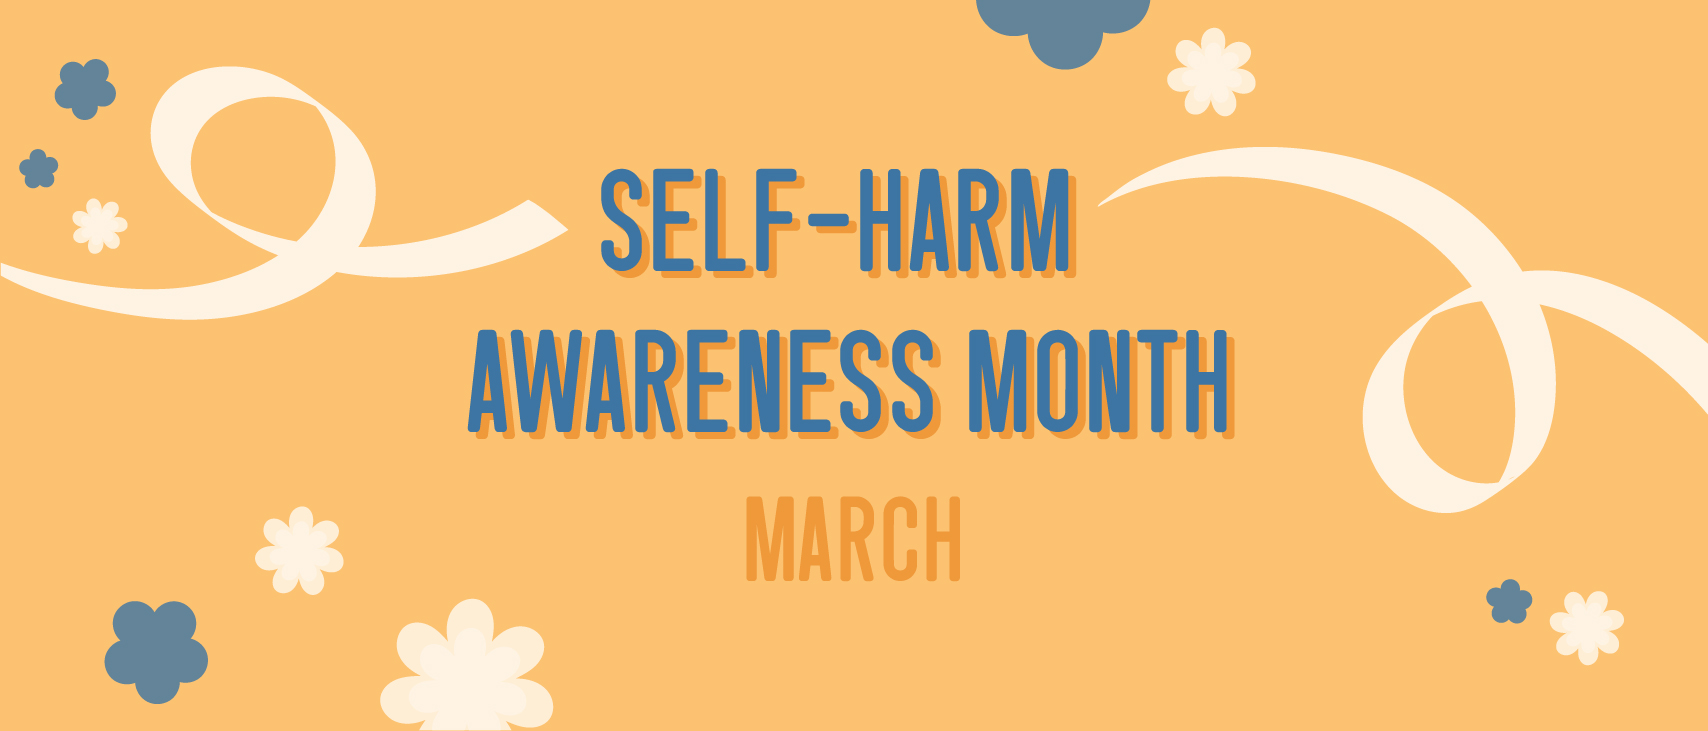 On this last day of self-harm awareness month, we are answering some common questions